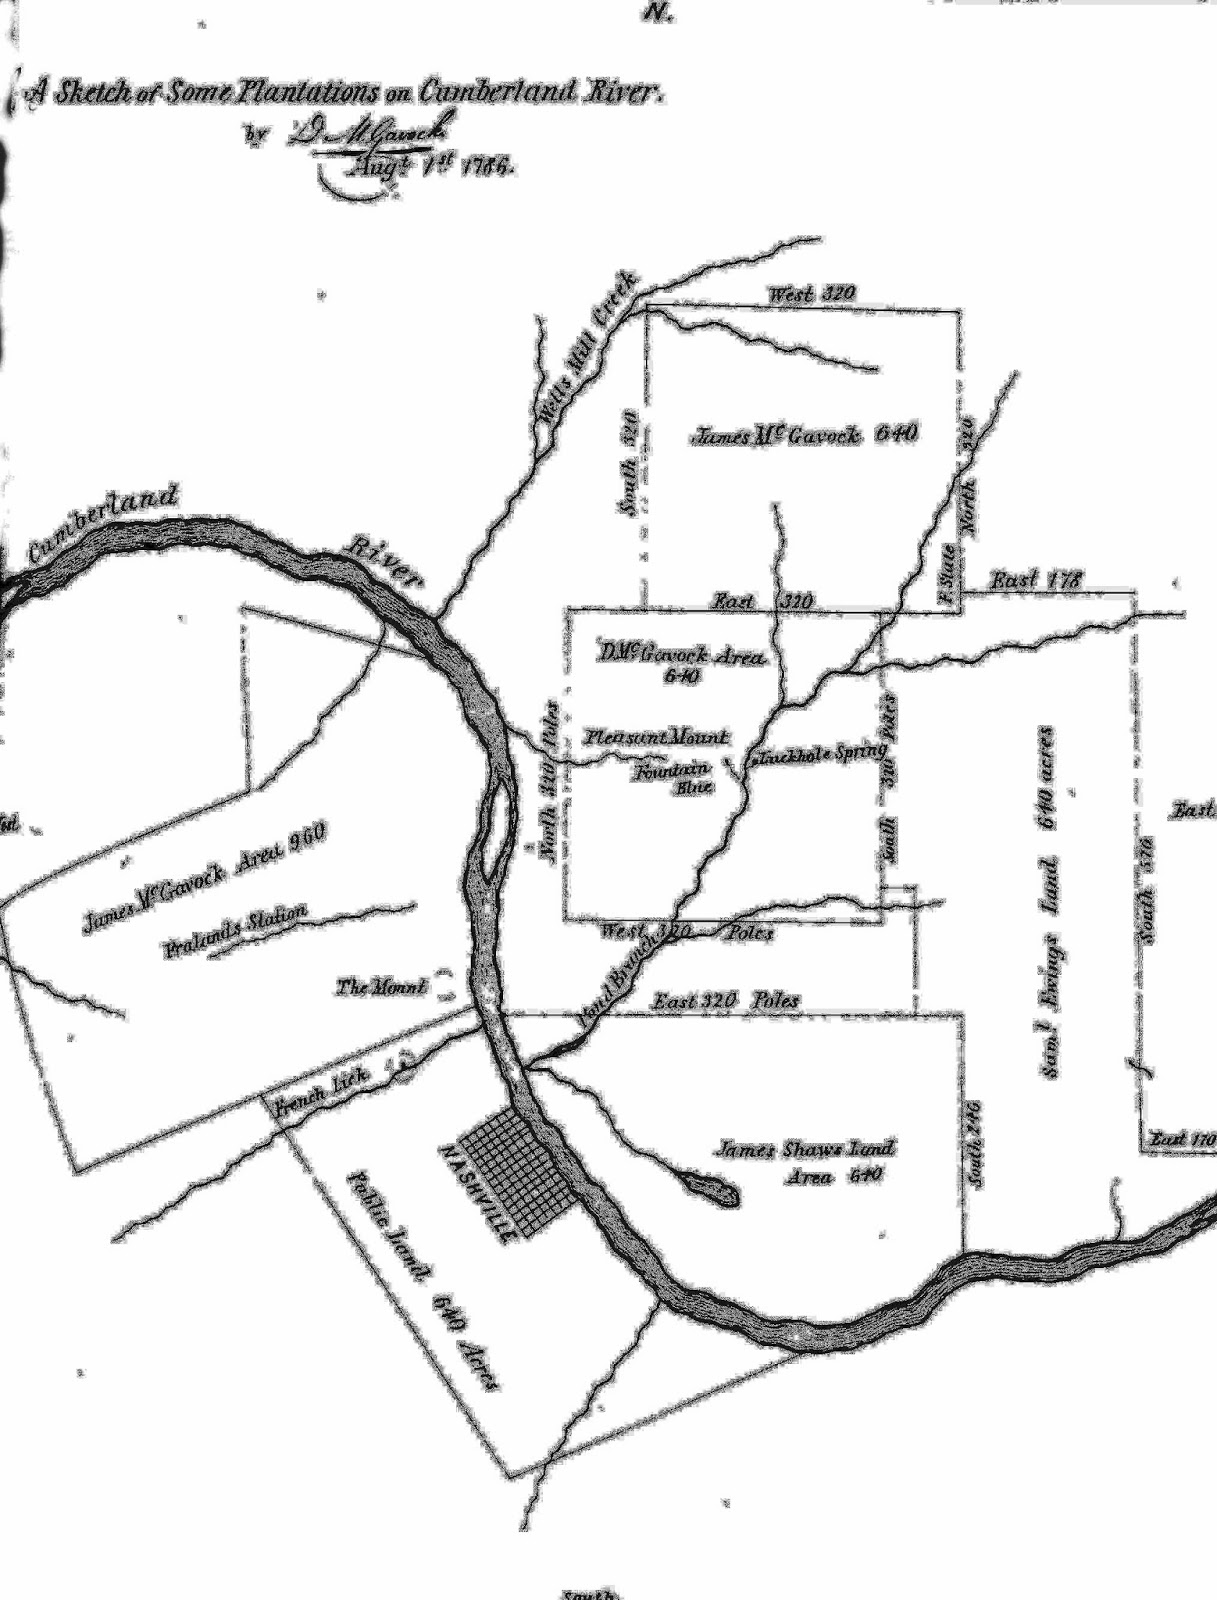 Map of grants in east nashville 1796 david mcgavock history of davidson county clayton